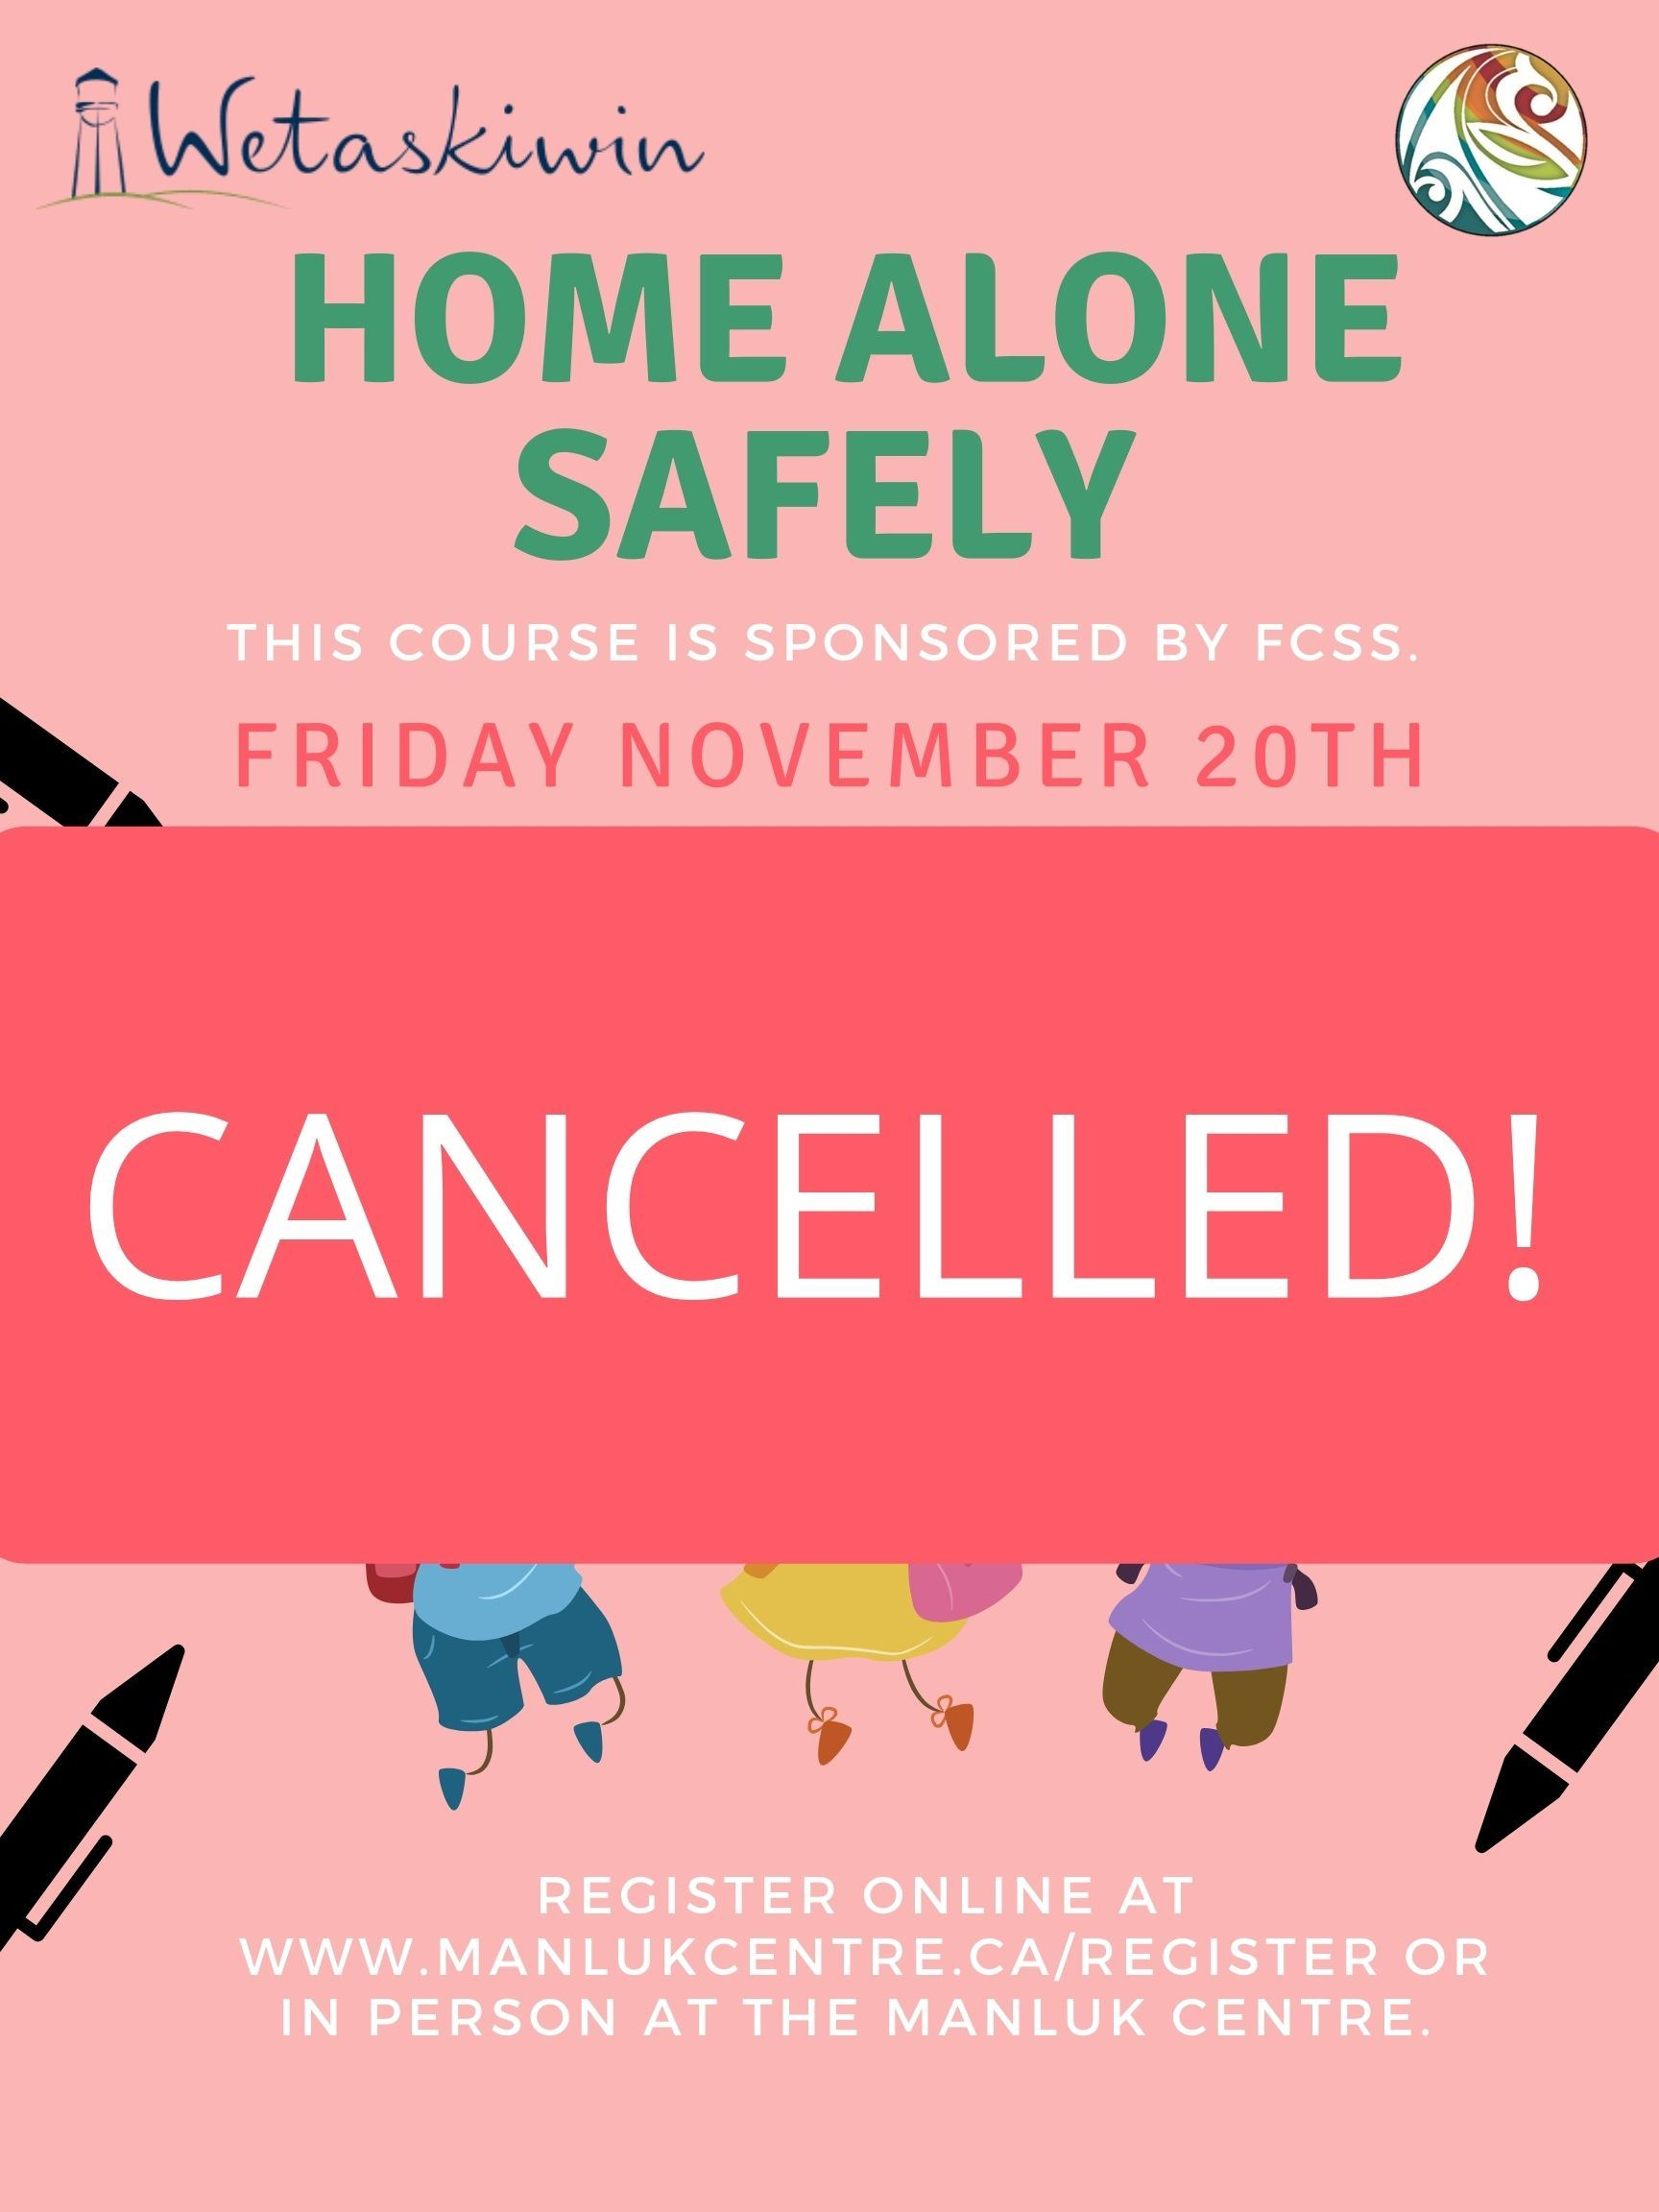 CANCELLED! Home Alone Safely - Nov. 20th